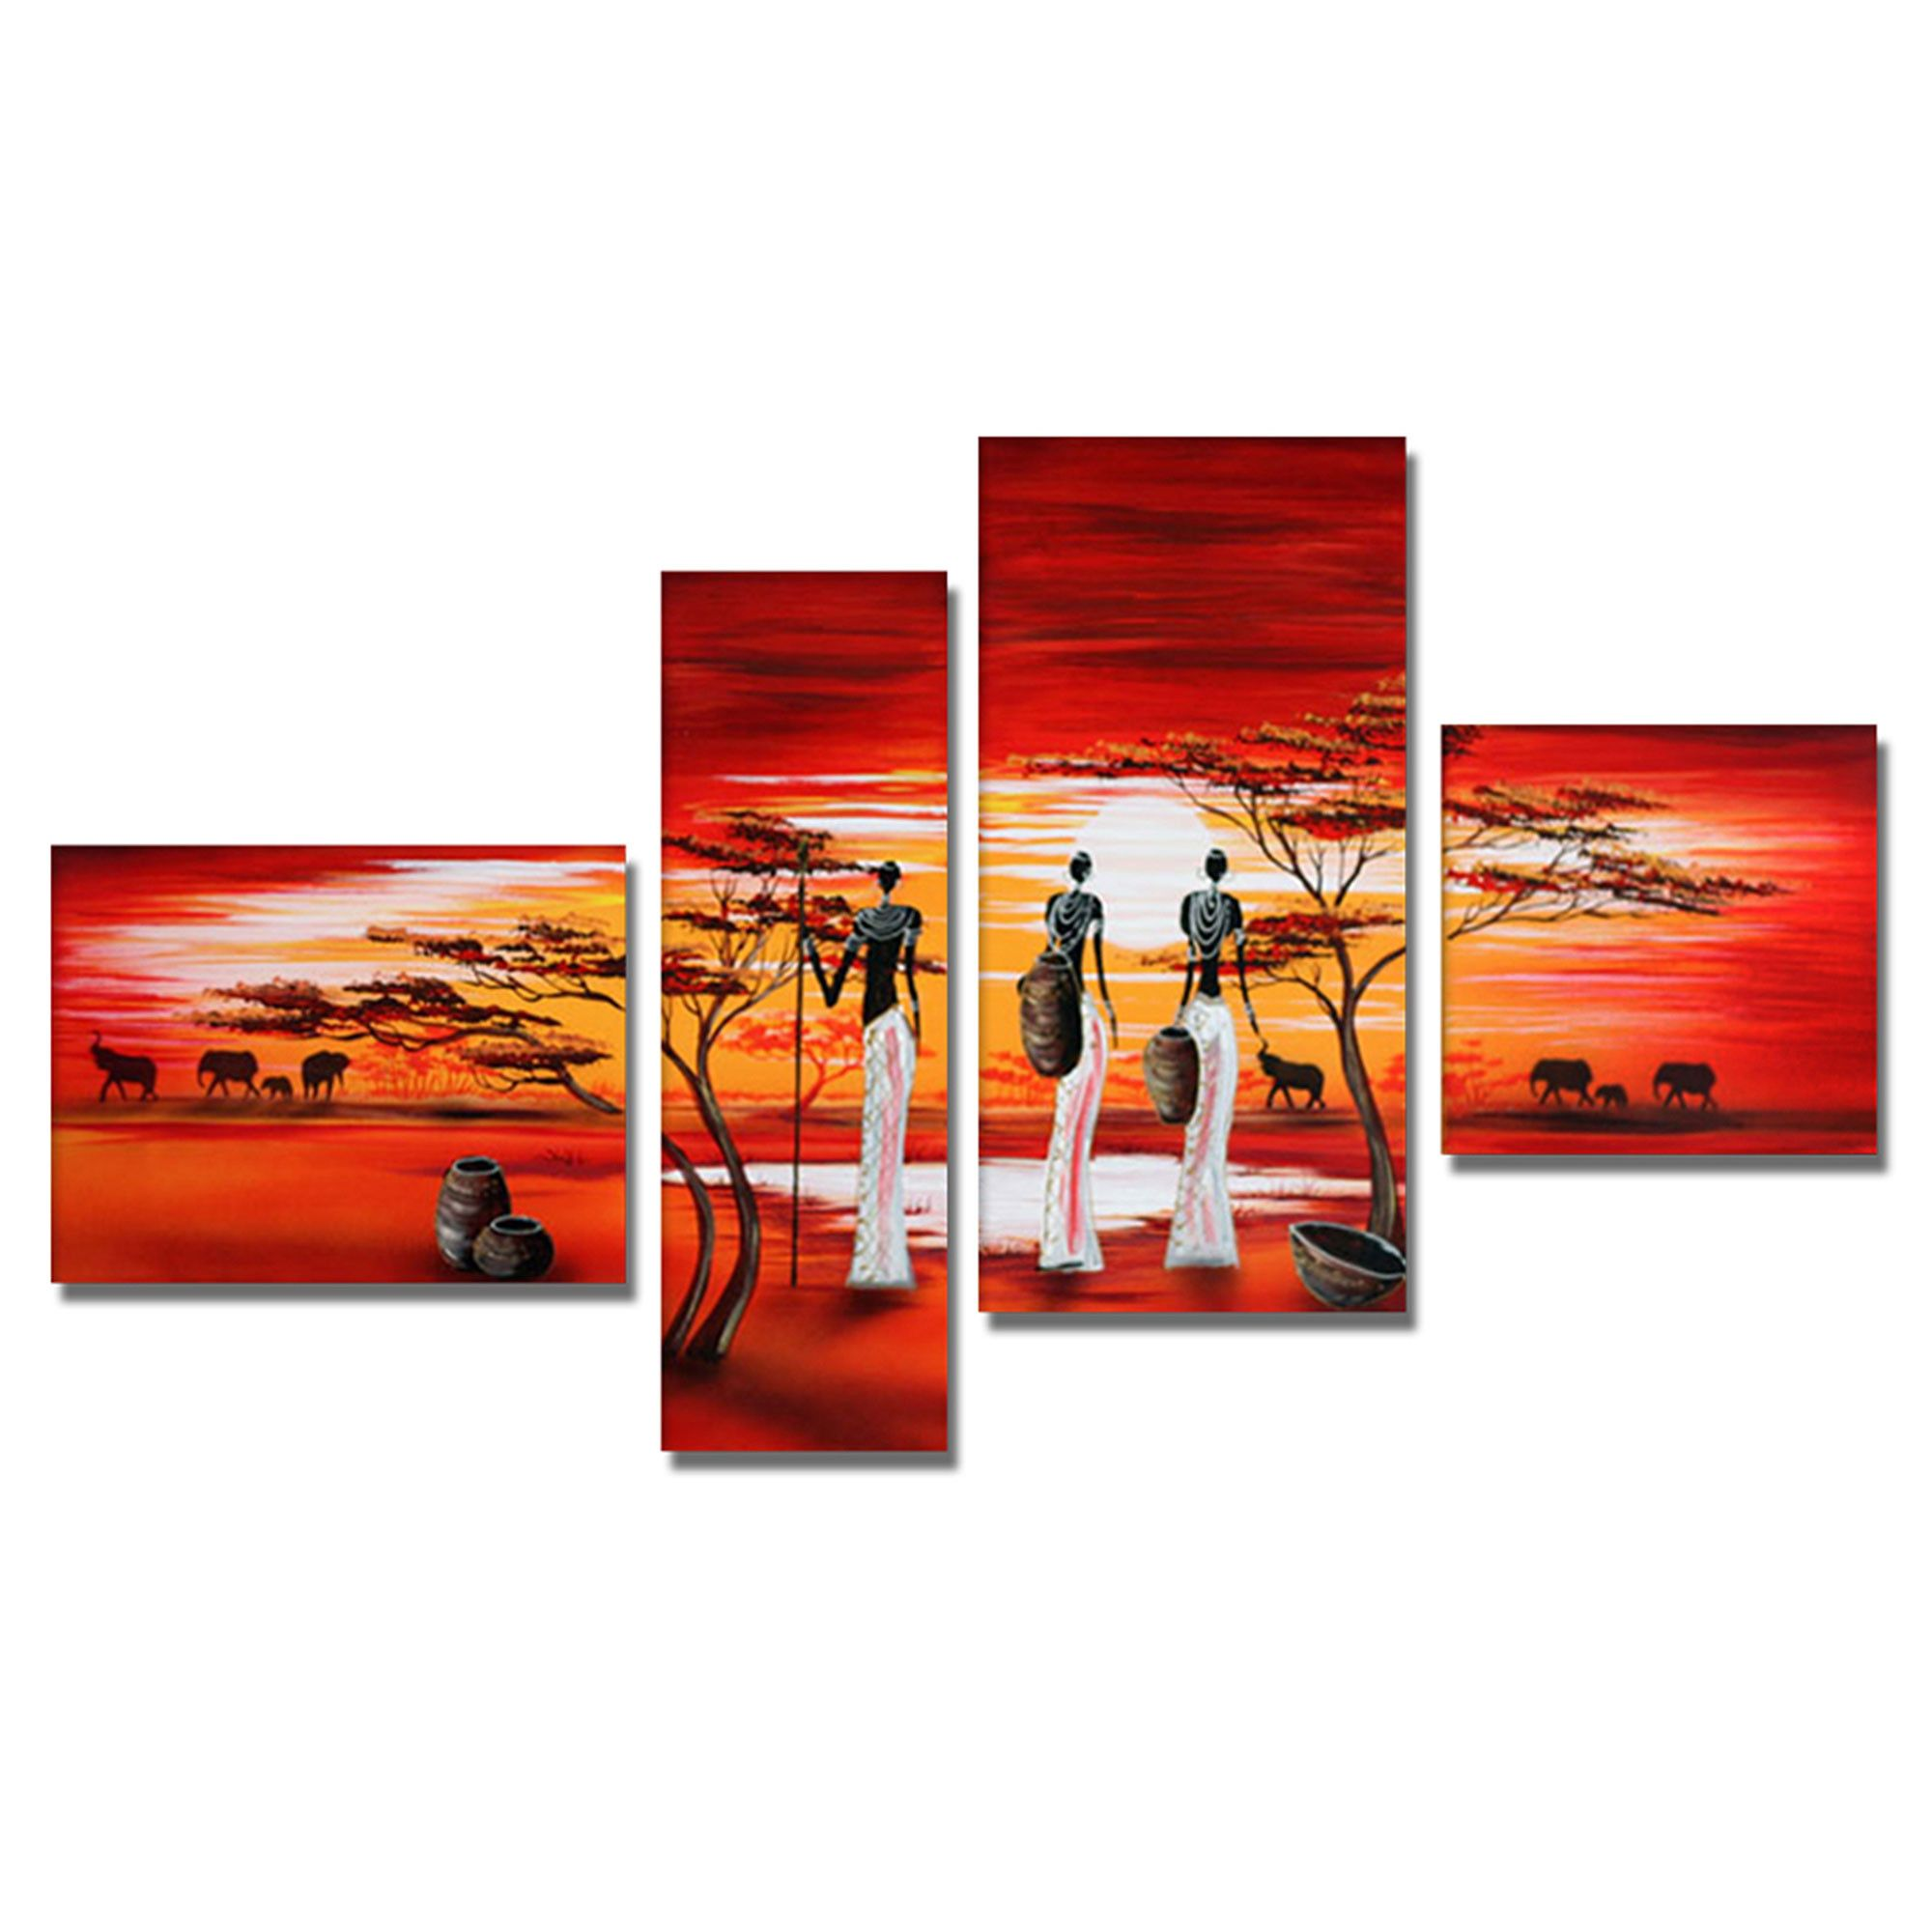 Tableau Triptyque Paysage African Woman View Of The Land Canvas Wall Art Oil Painting Art